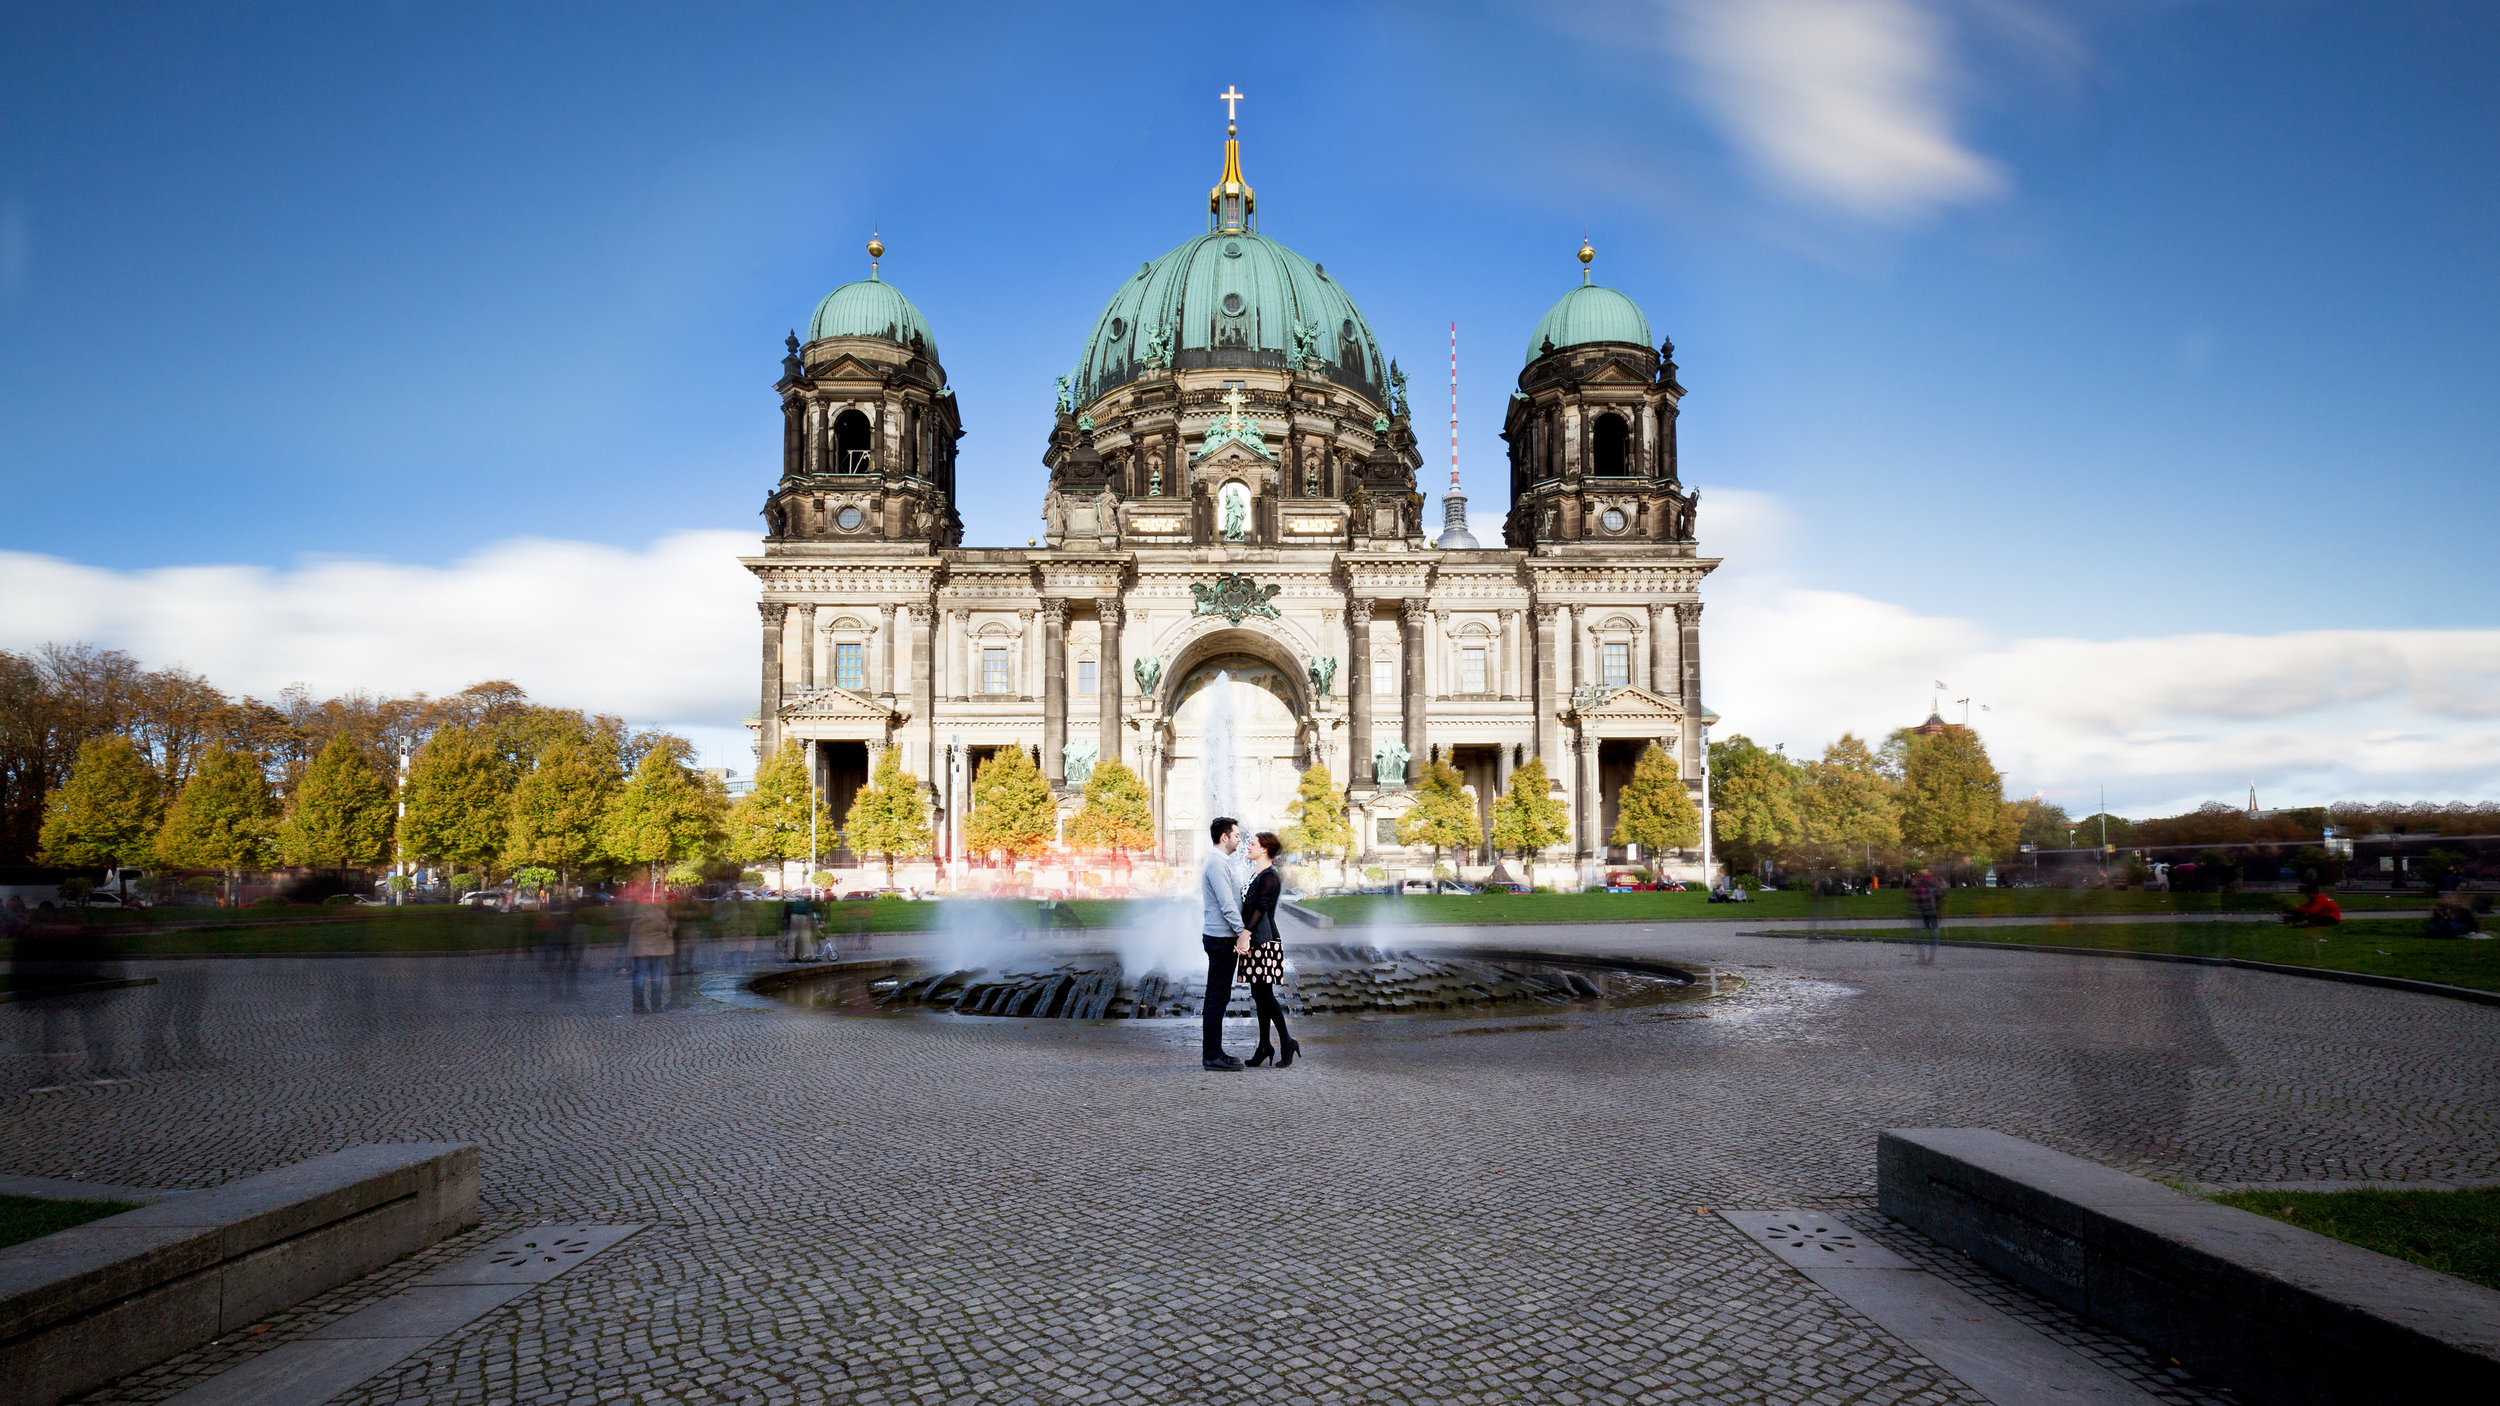 He shot pictures for us in Berlin City. Used good equipment for very good looking themes. Very friendly and professional photographer - Raffaele & Katarina